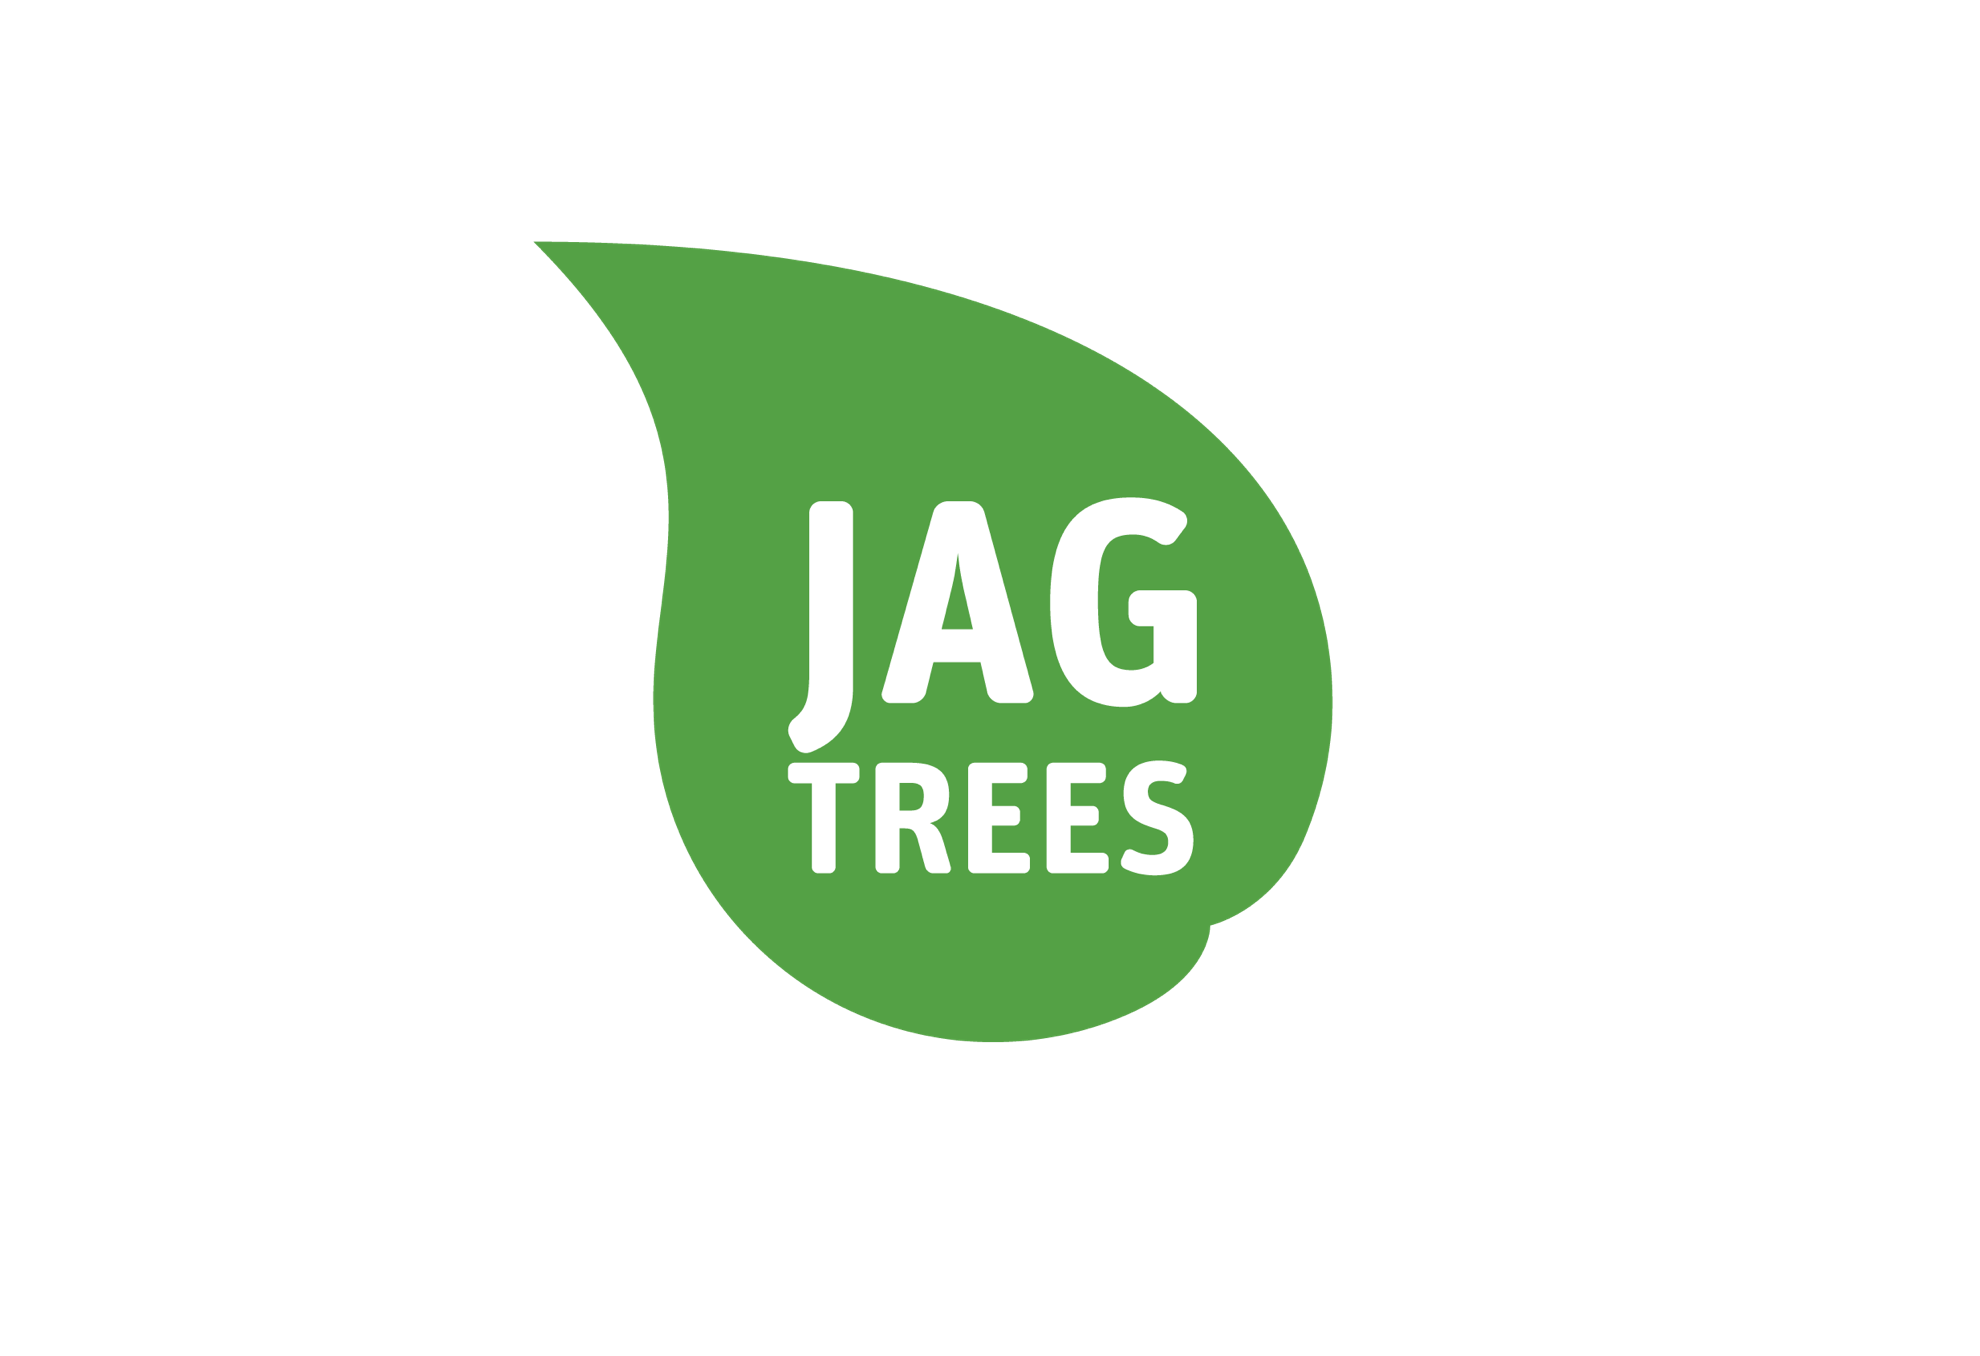 JAG Trees Identity & Website